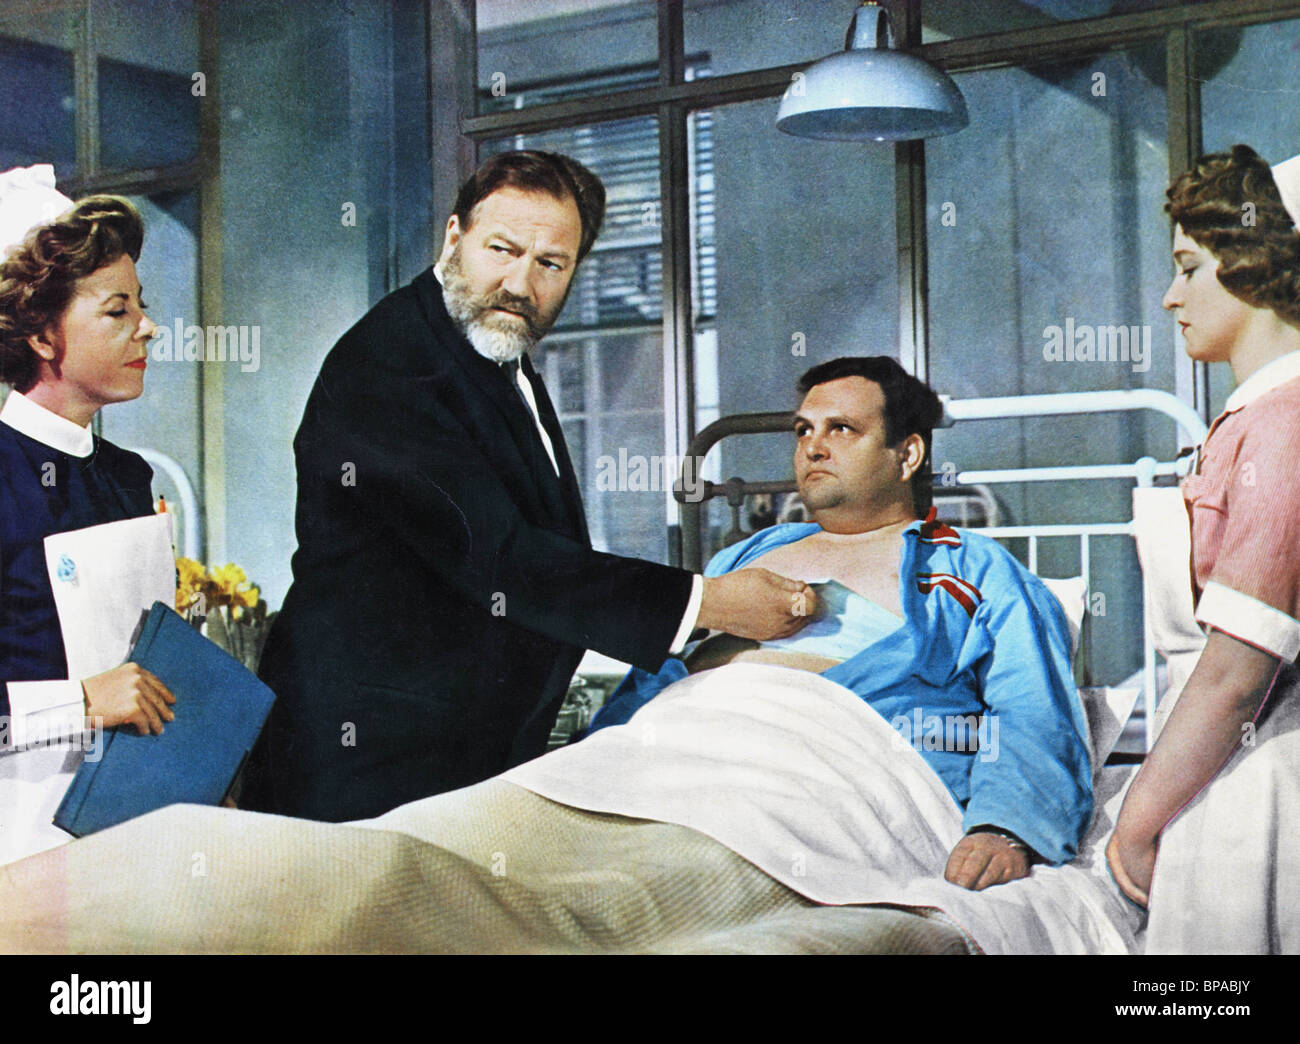 SCENE WITH JAMES ROBERTSON JUSTICE DOCTOR IN DISTRESS (1963) - Stock Image